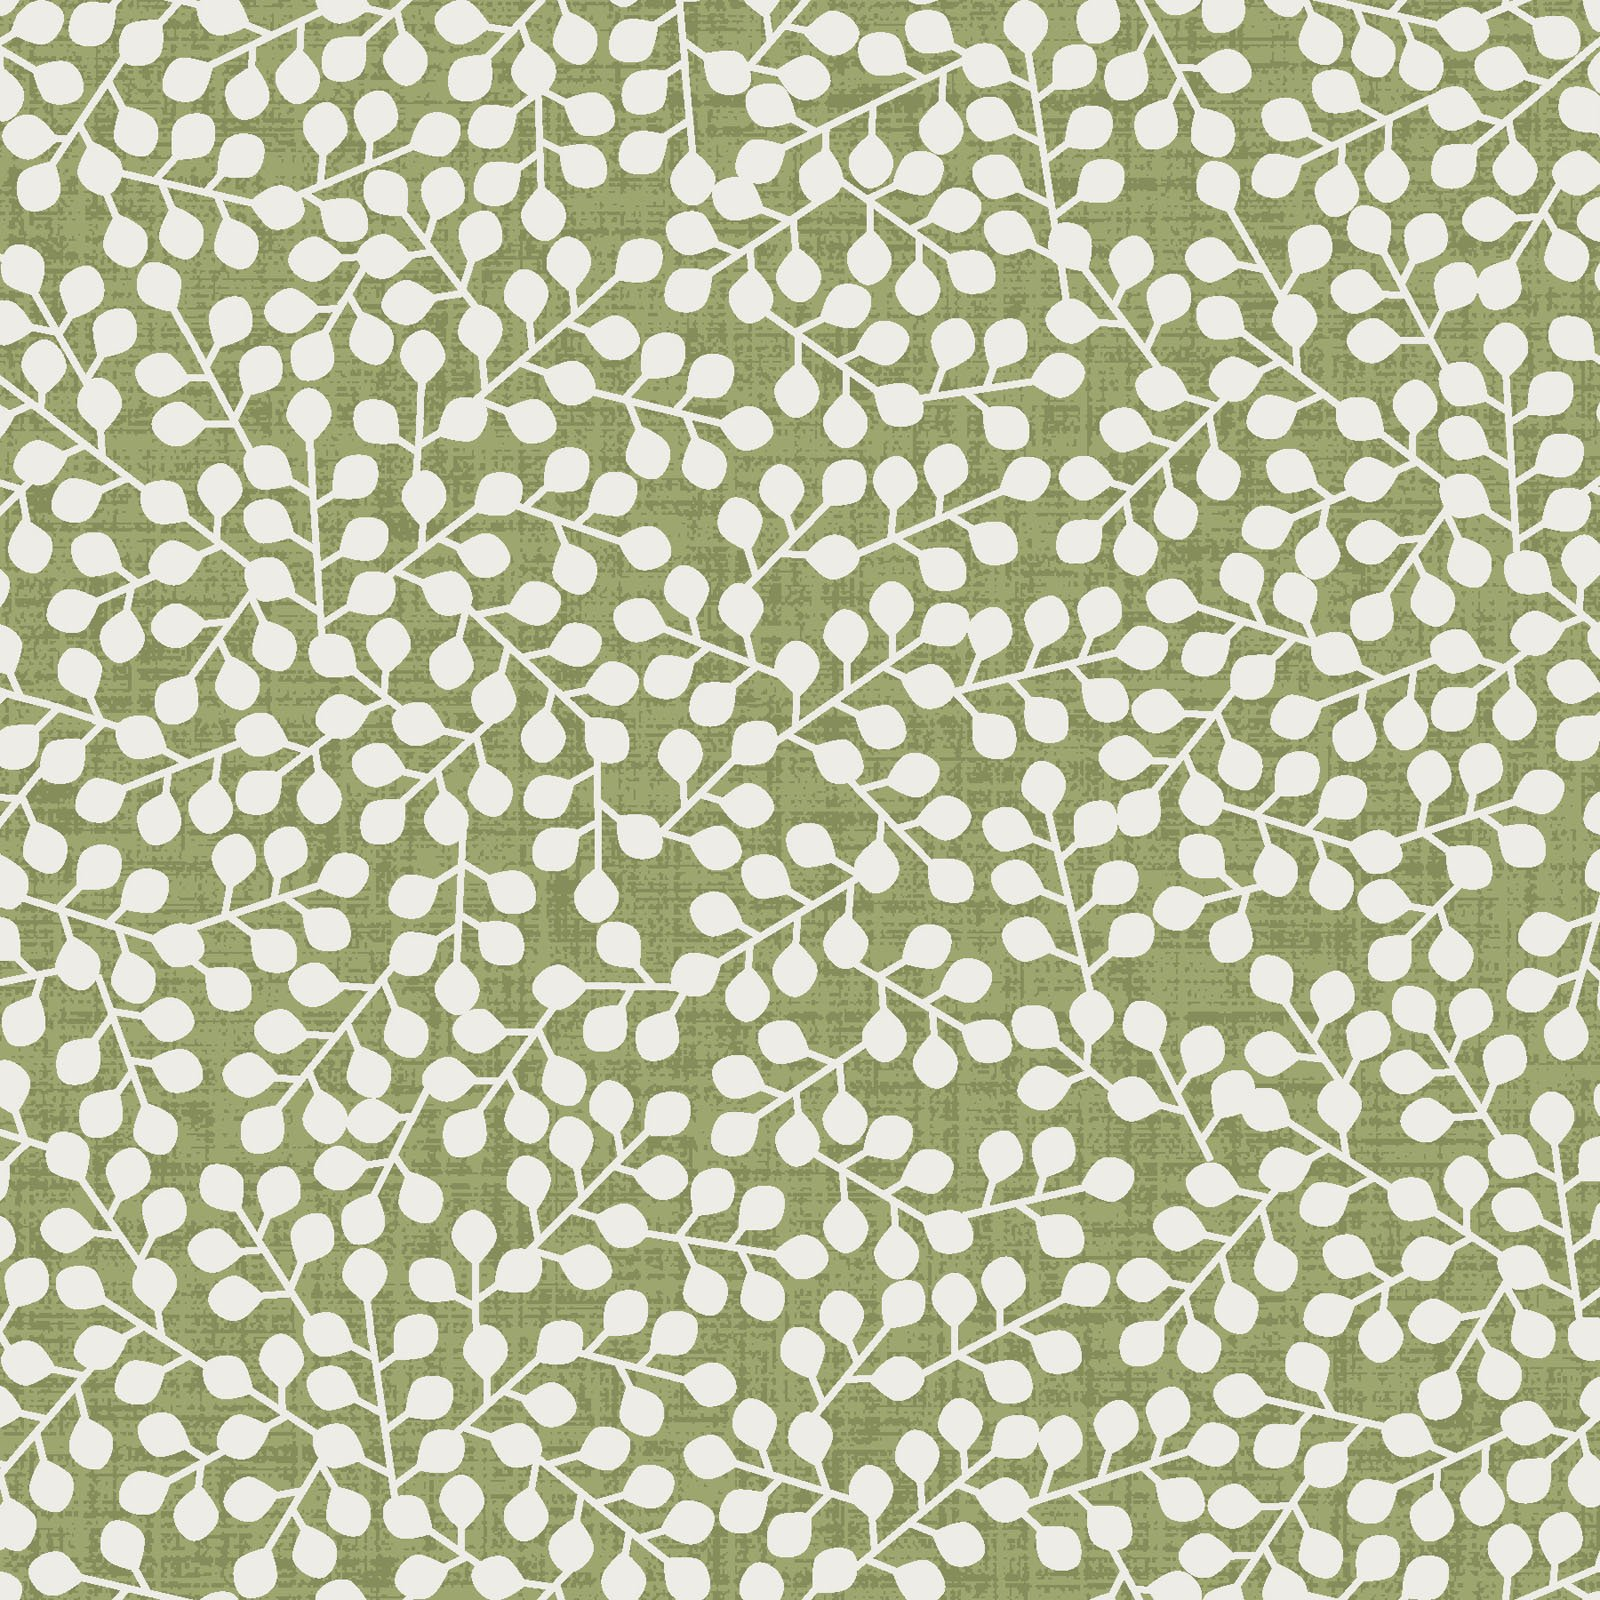 EESC-9887 G - FLOWER & VINE BY MONIQUE JACOBS BERRIES GREEN - AVAILABLE TO ORDER